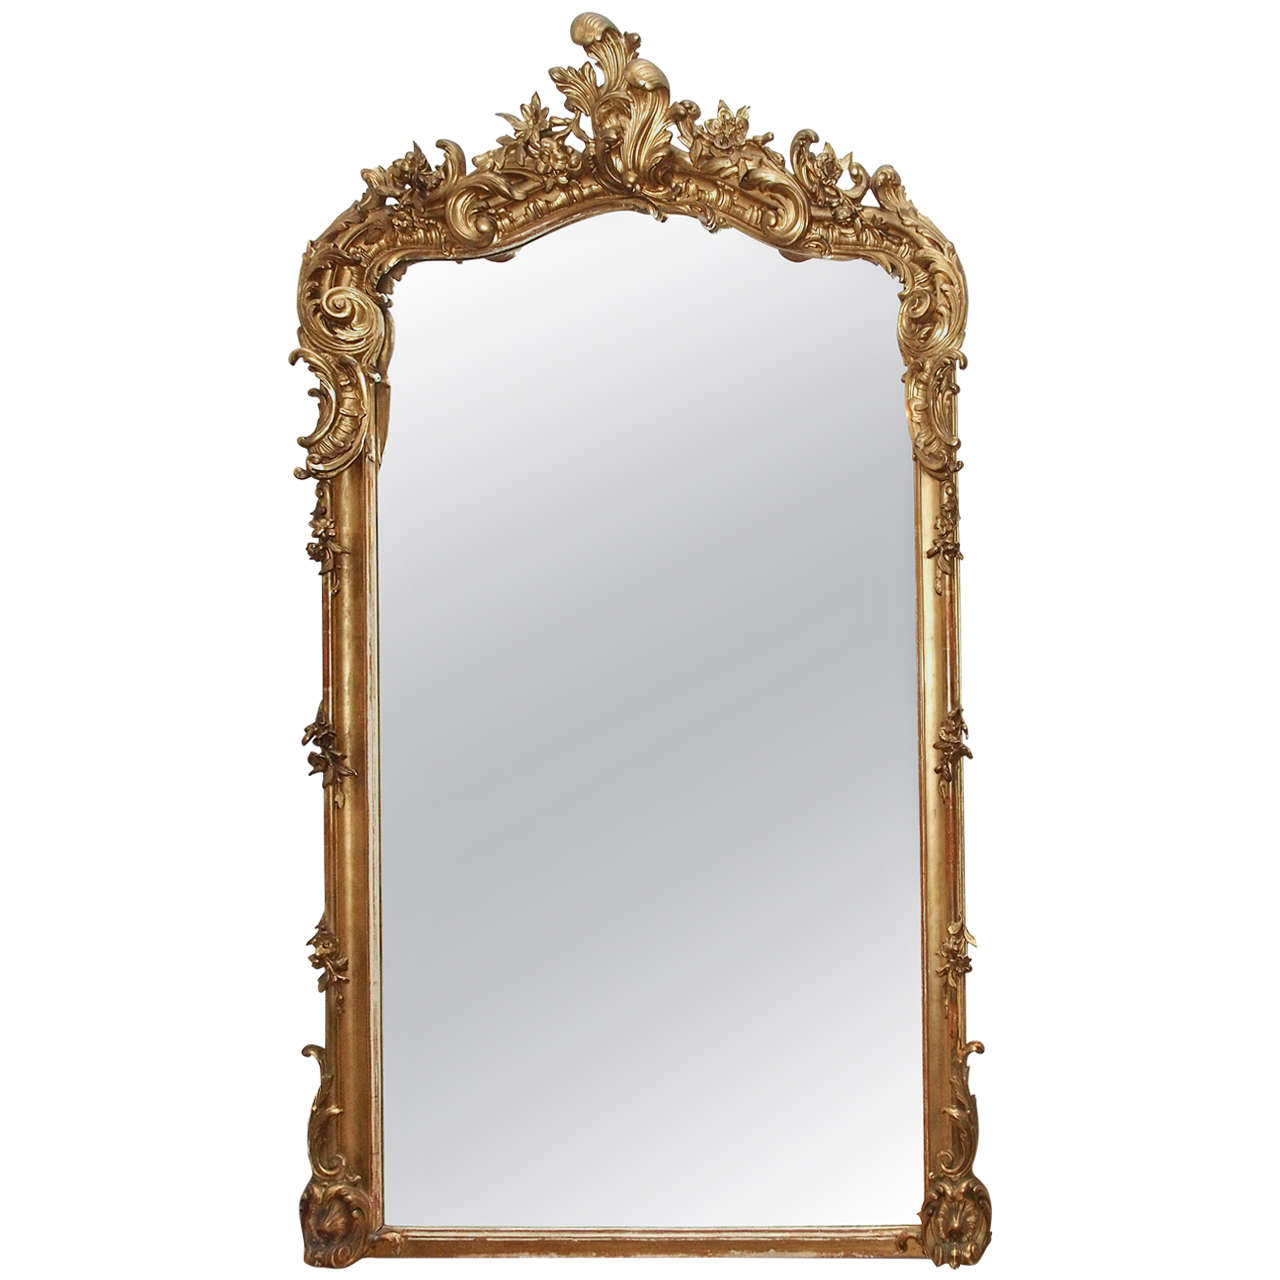 Antique French Louis Xv Fine Gold Leaf Beveled Mirror At 1stdibs